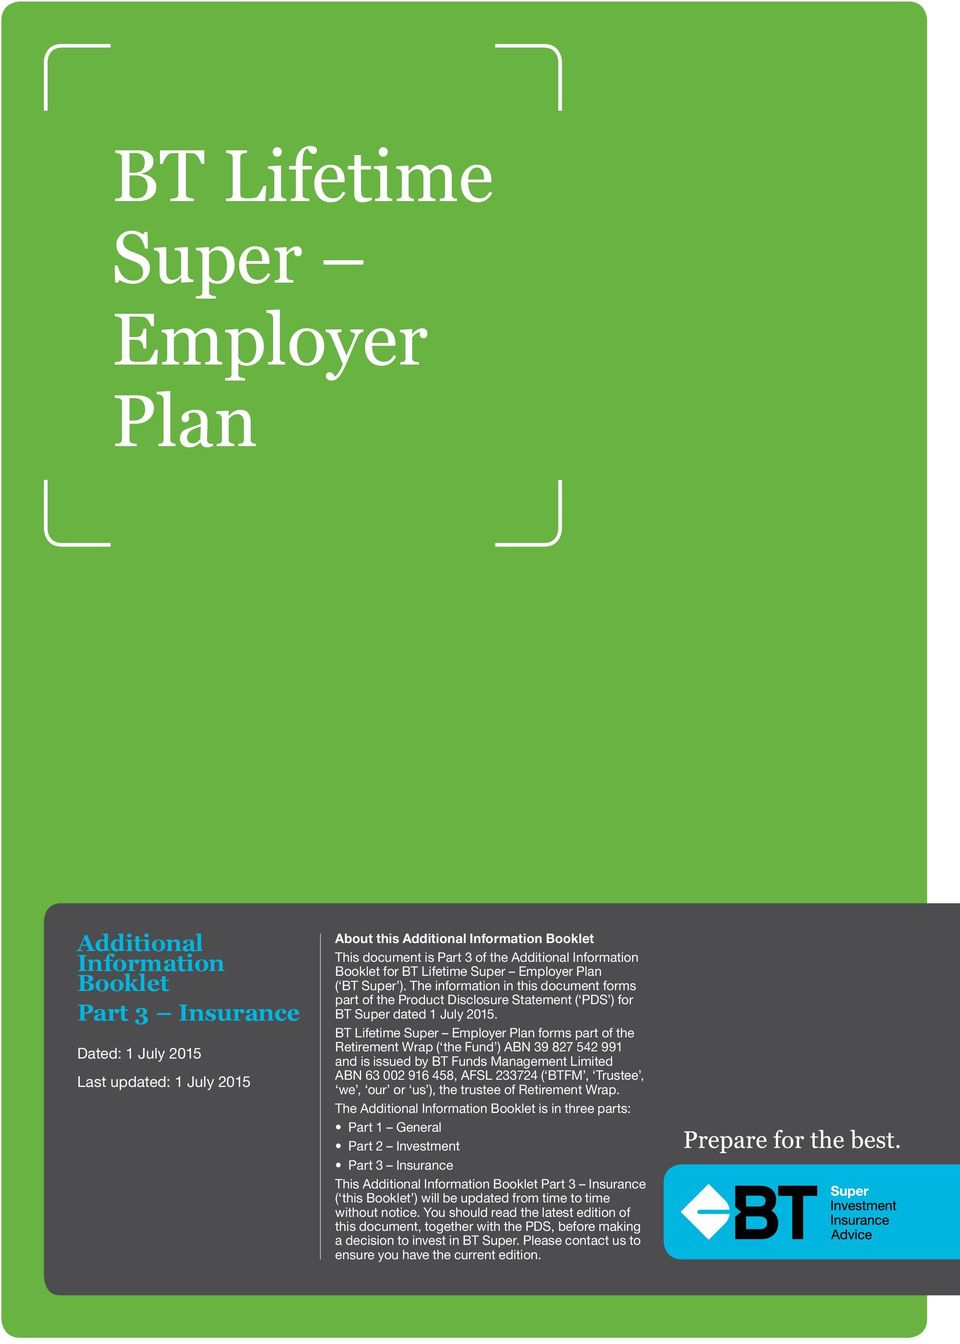 BT Lifetime Super Employer Plan forms part of the Retirement Wrap ( the Fund ) ABN 39 827 542 991 and is issued by BT Funds Management Limited ABN 63 002 916 458, AFSL 233724 ( BTFM, Trustee, we, our